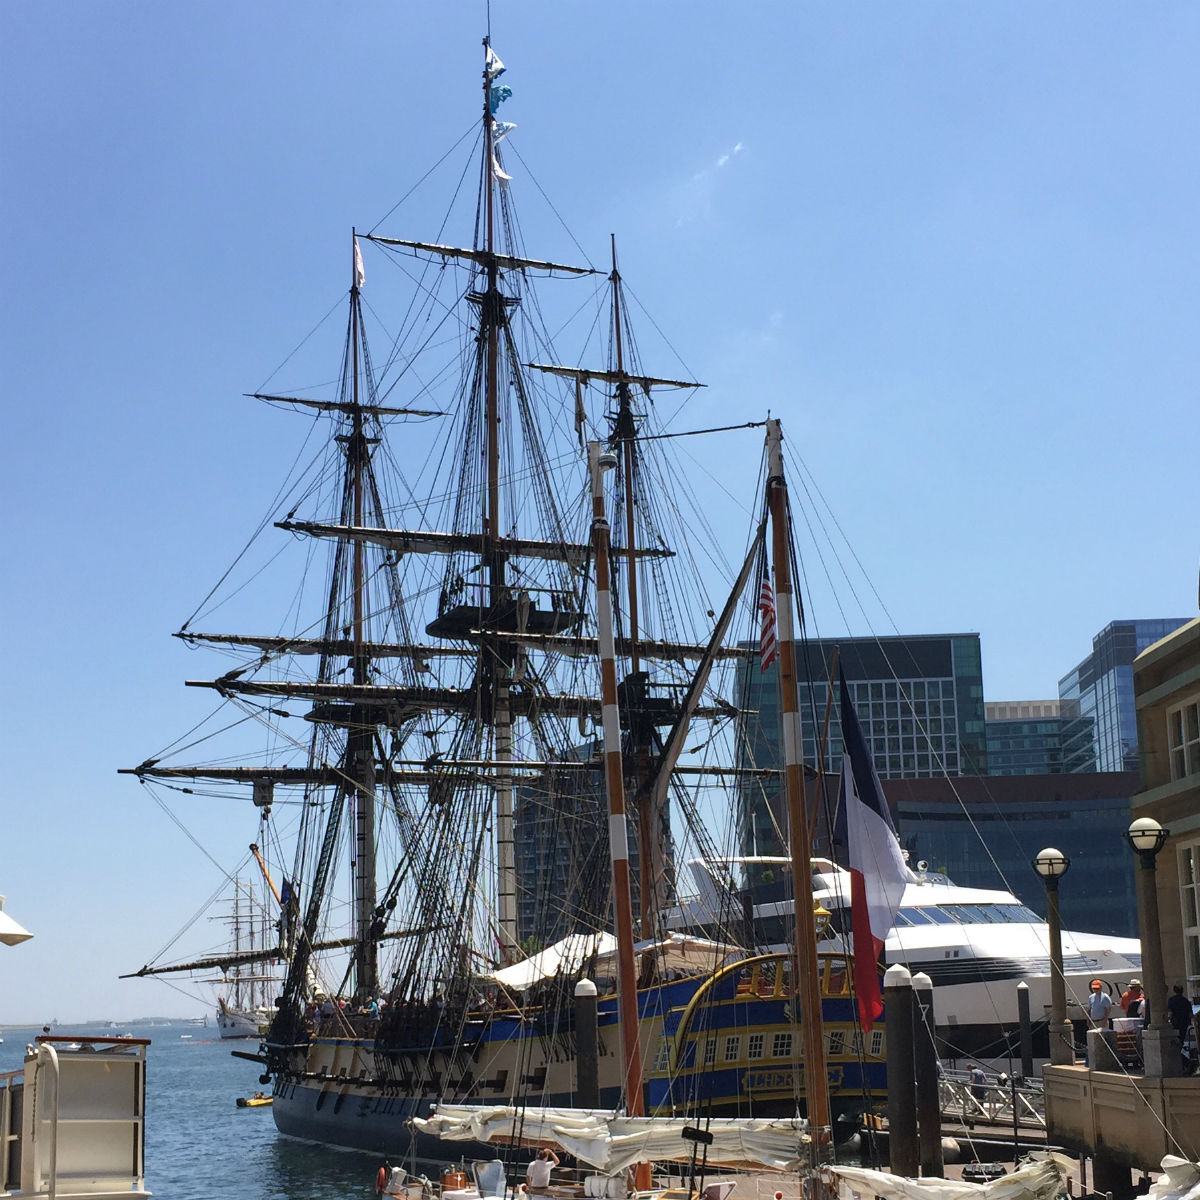 The Hermione in Rowes Wharf on July 11-12 / Photo by Shaula Clark